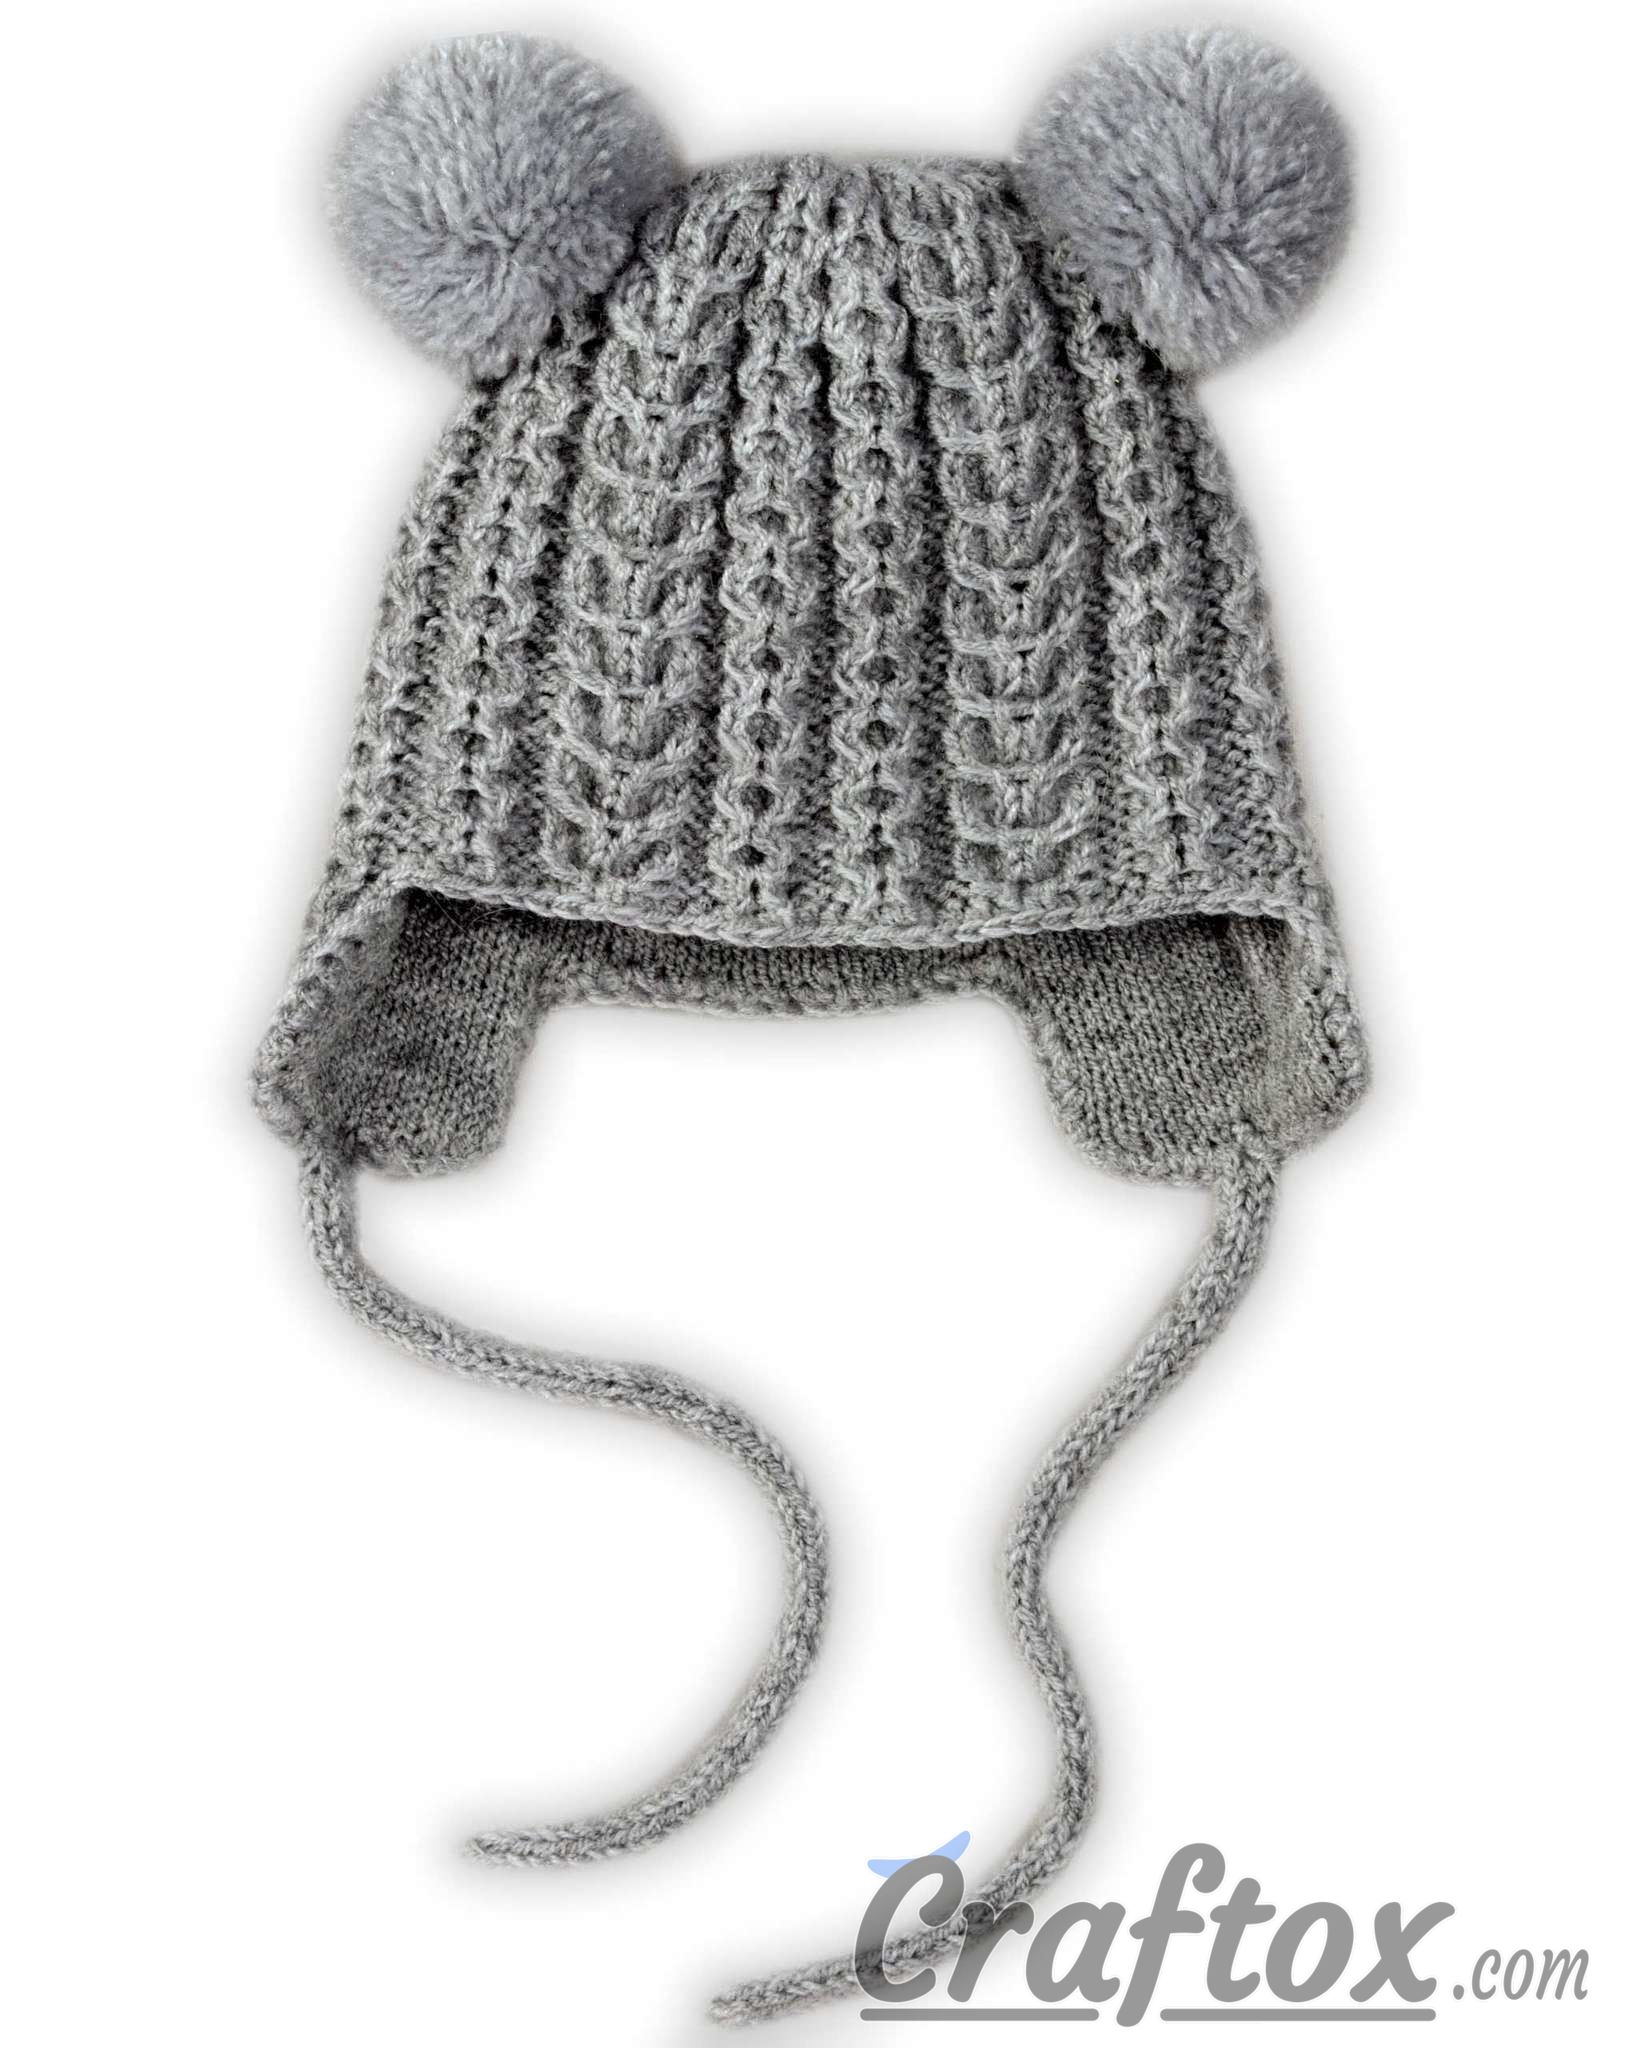 Knitting winter hat with pom poms for kid. Free pattern 5db42c76d8b